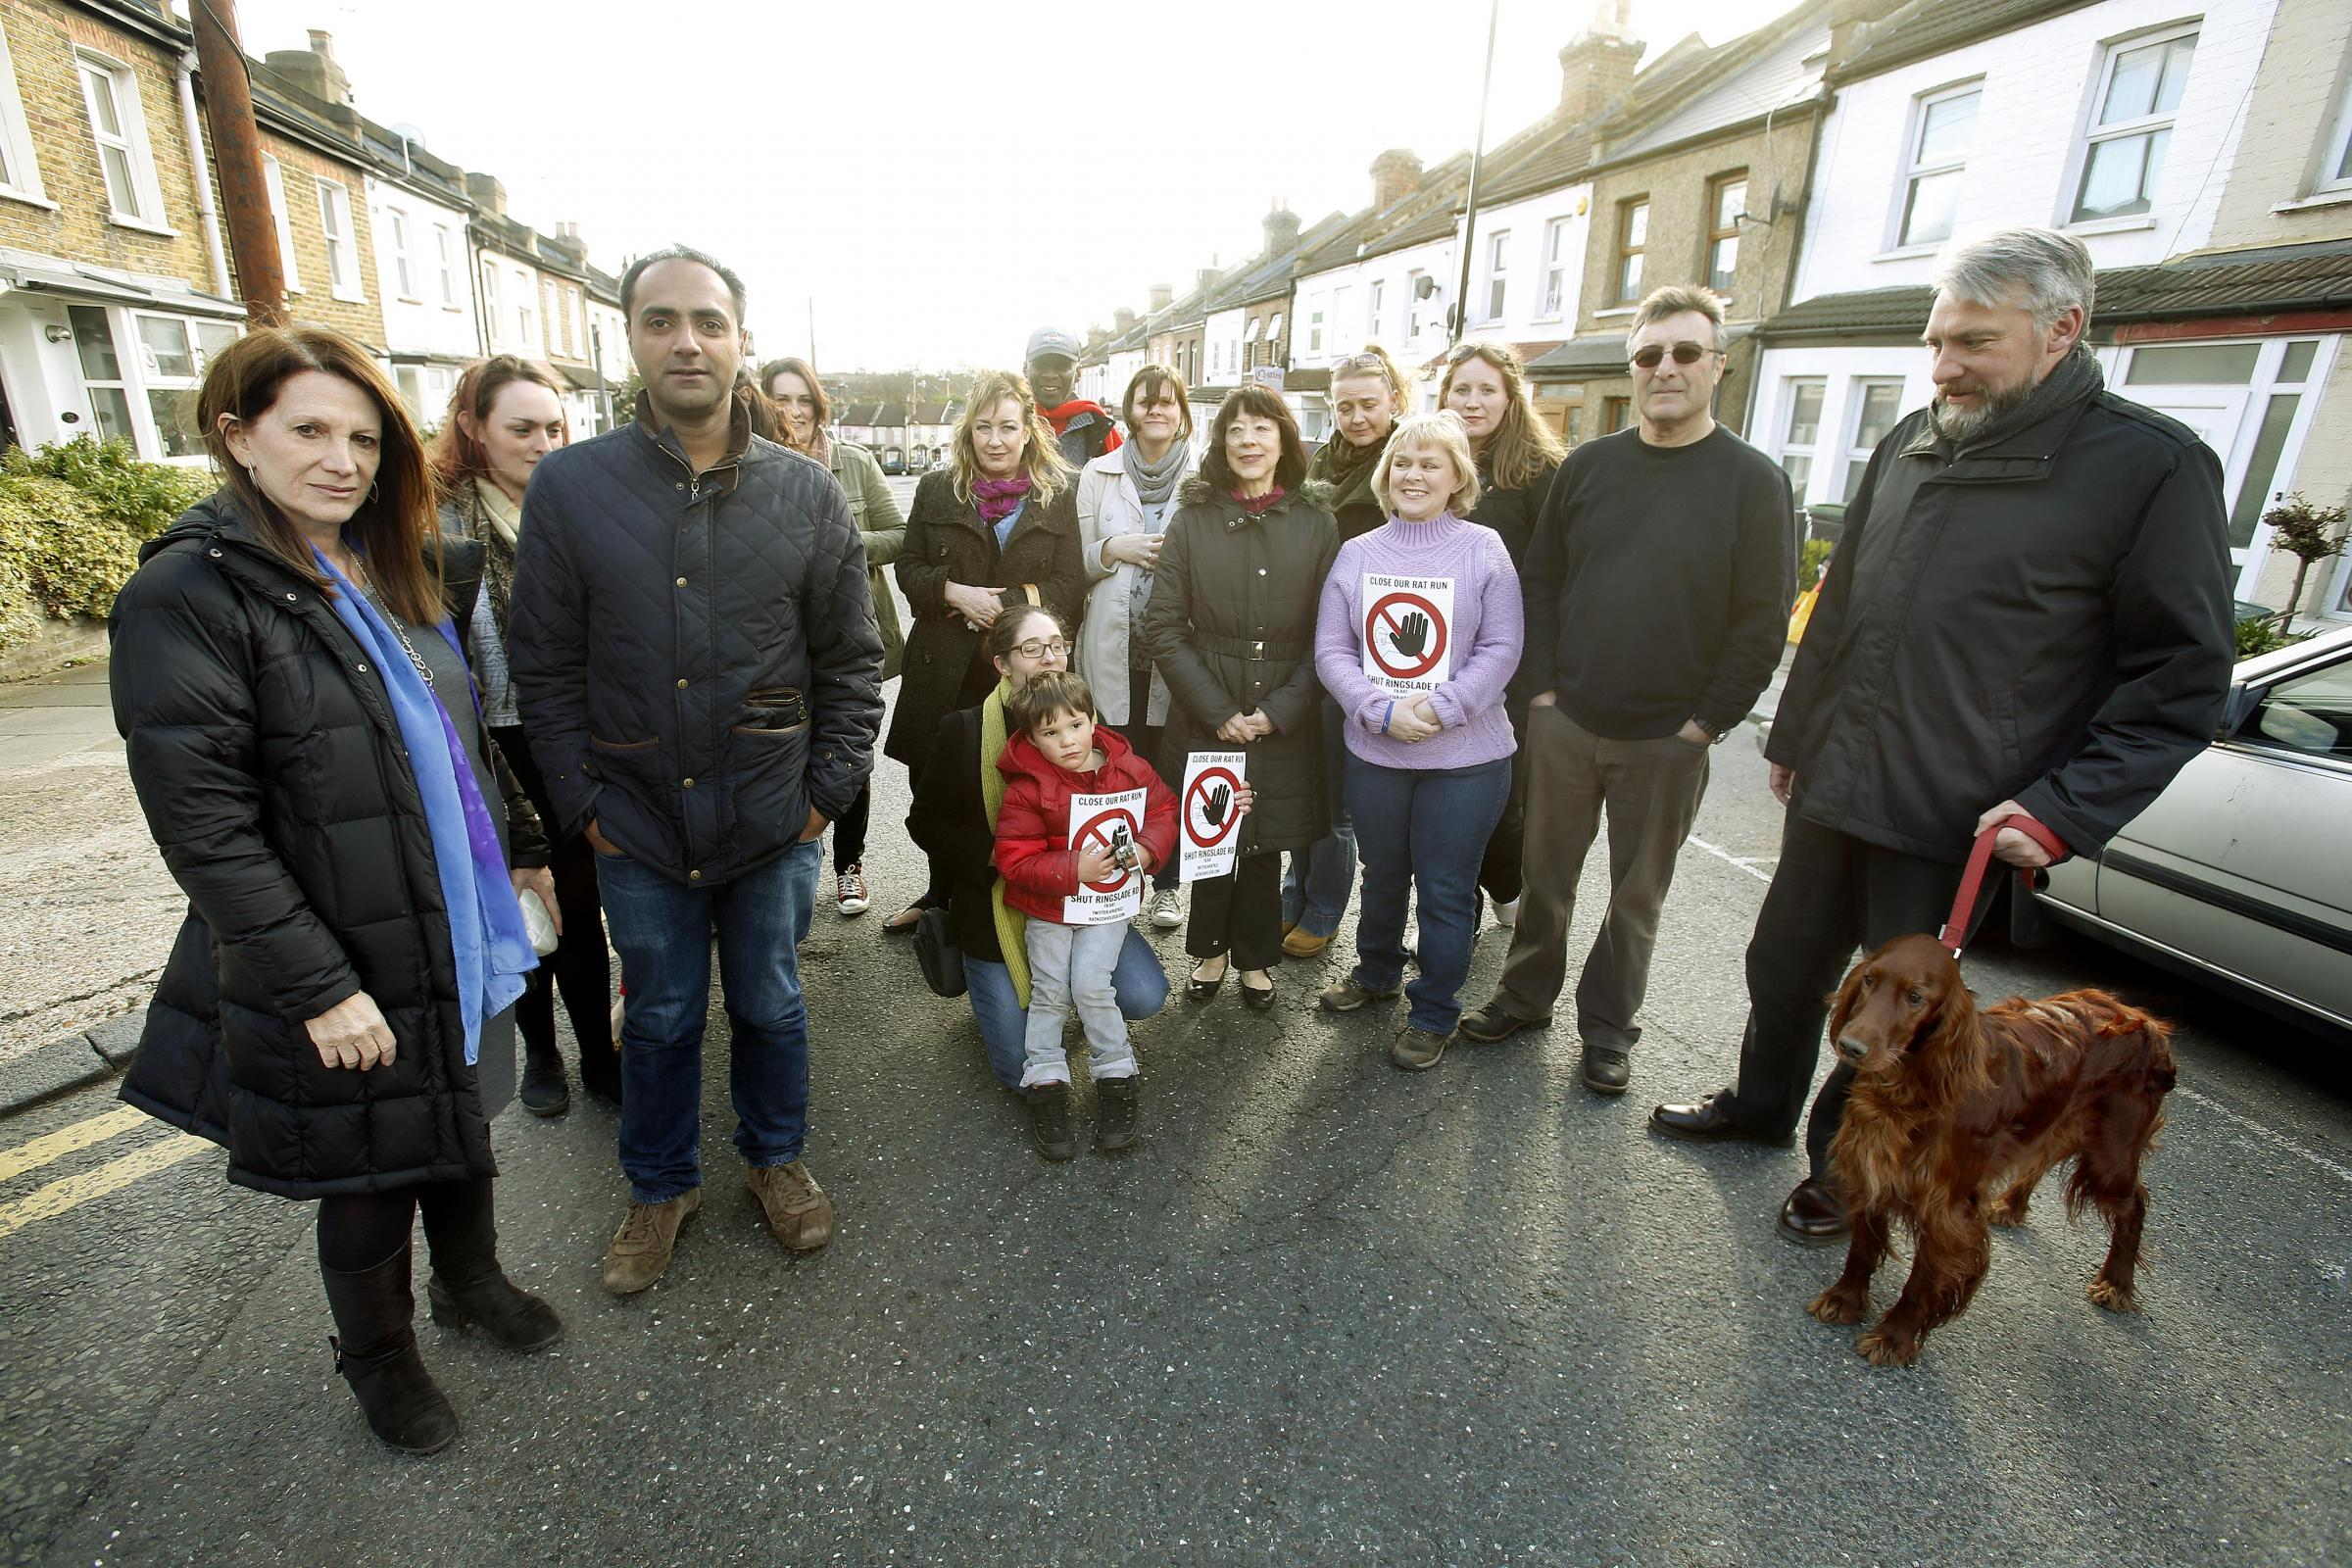 Lynne Featherstone, MP for Hornsey and Wood Green, has called for the closure of a '